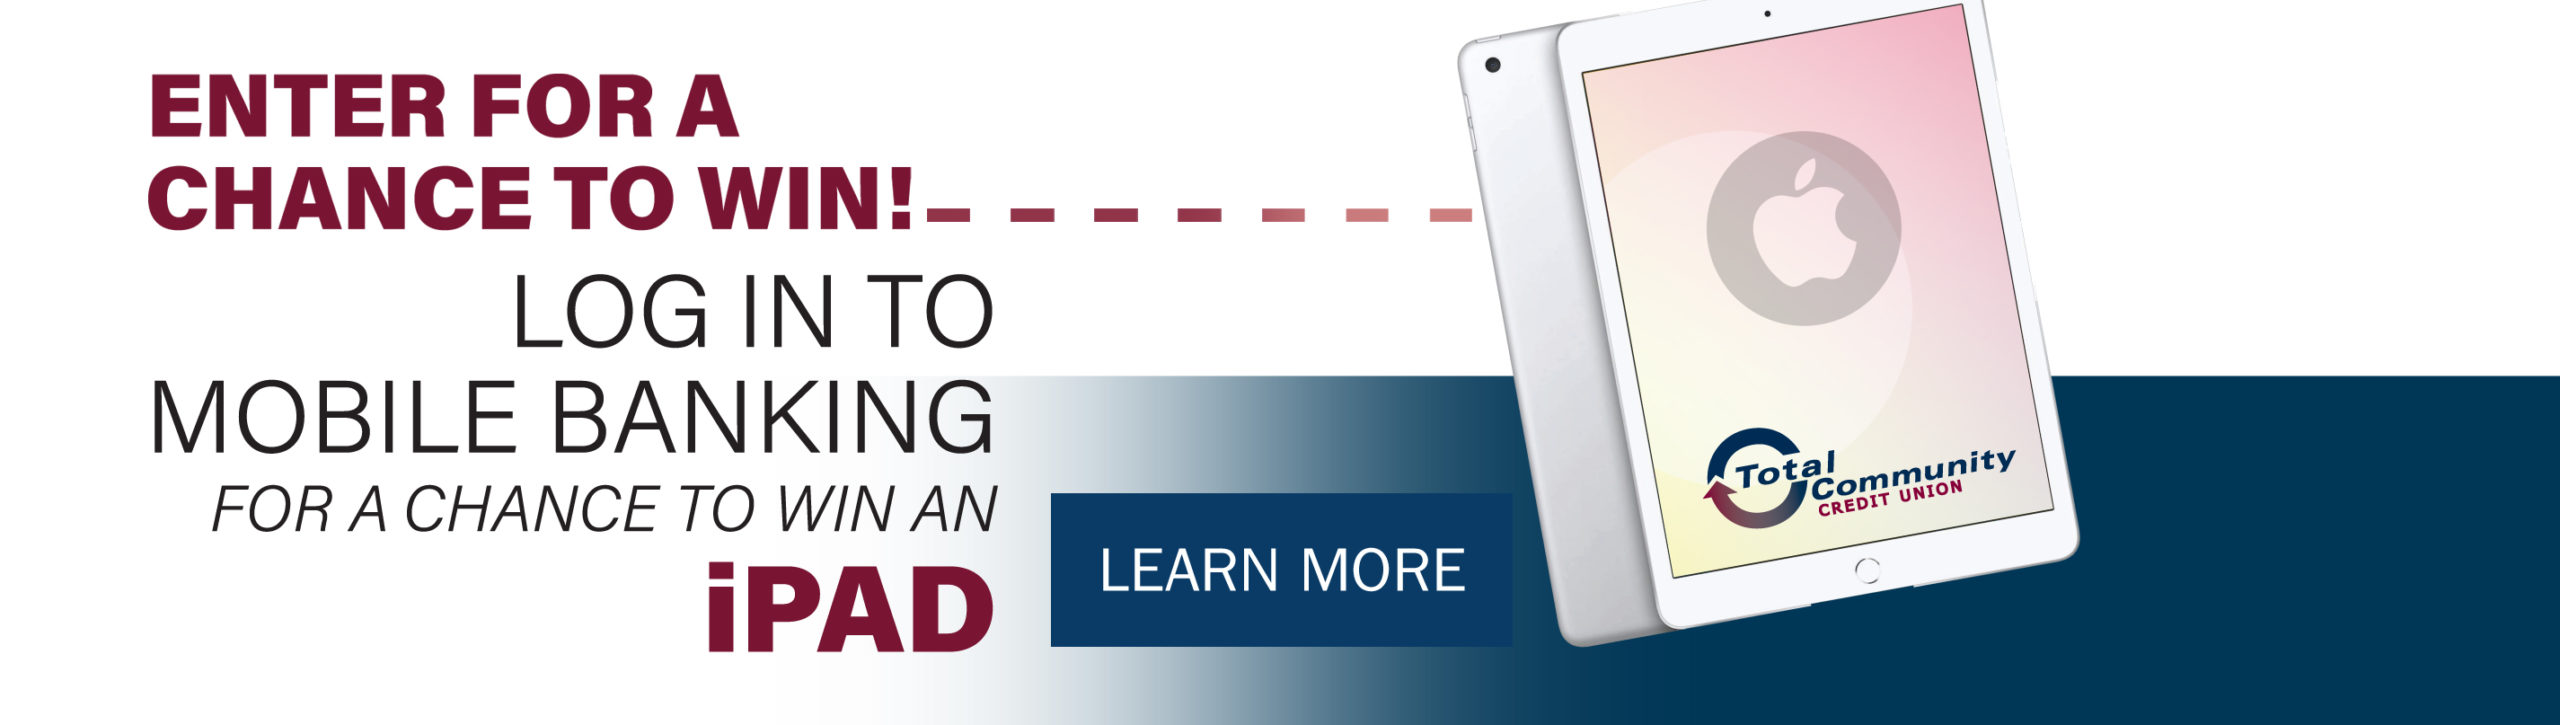 log in to mobile banking to enter raffle for ipad prize